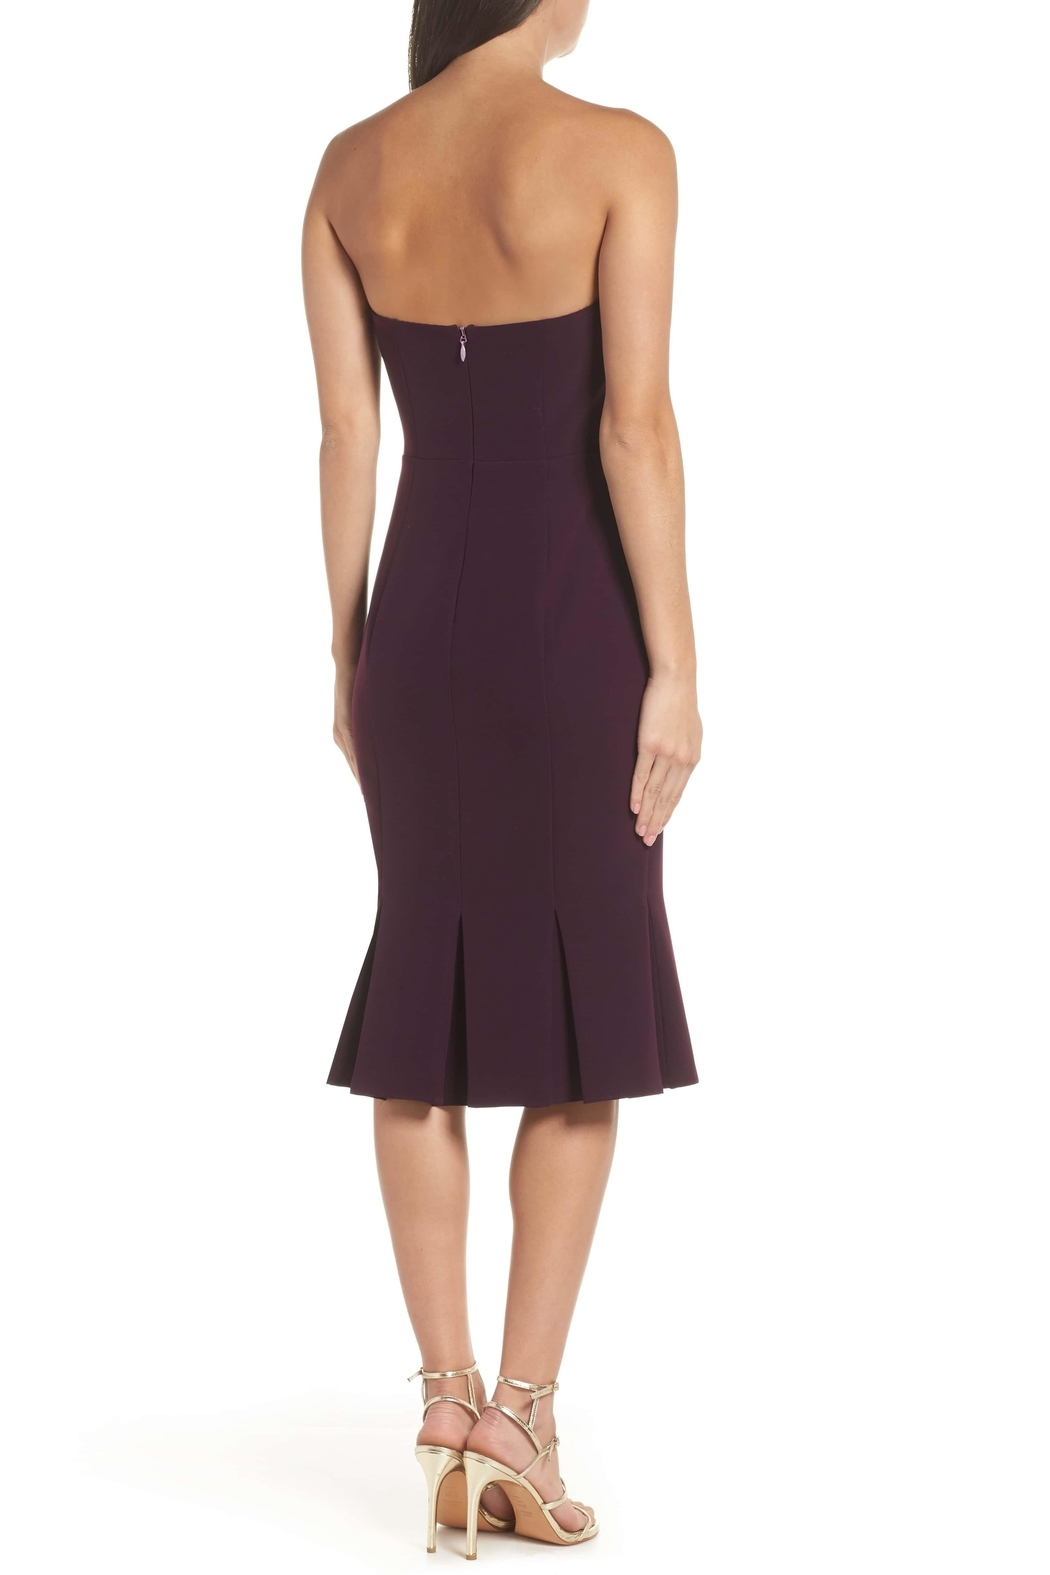 Adelyn Rae Alexis Woven Strapless Dress - Front Full Image